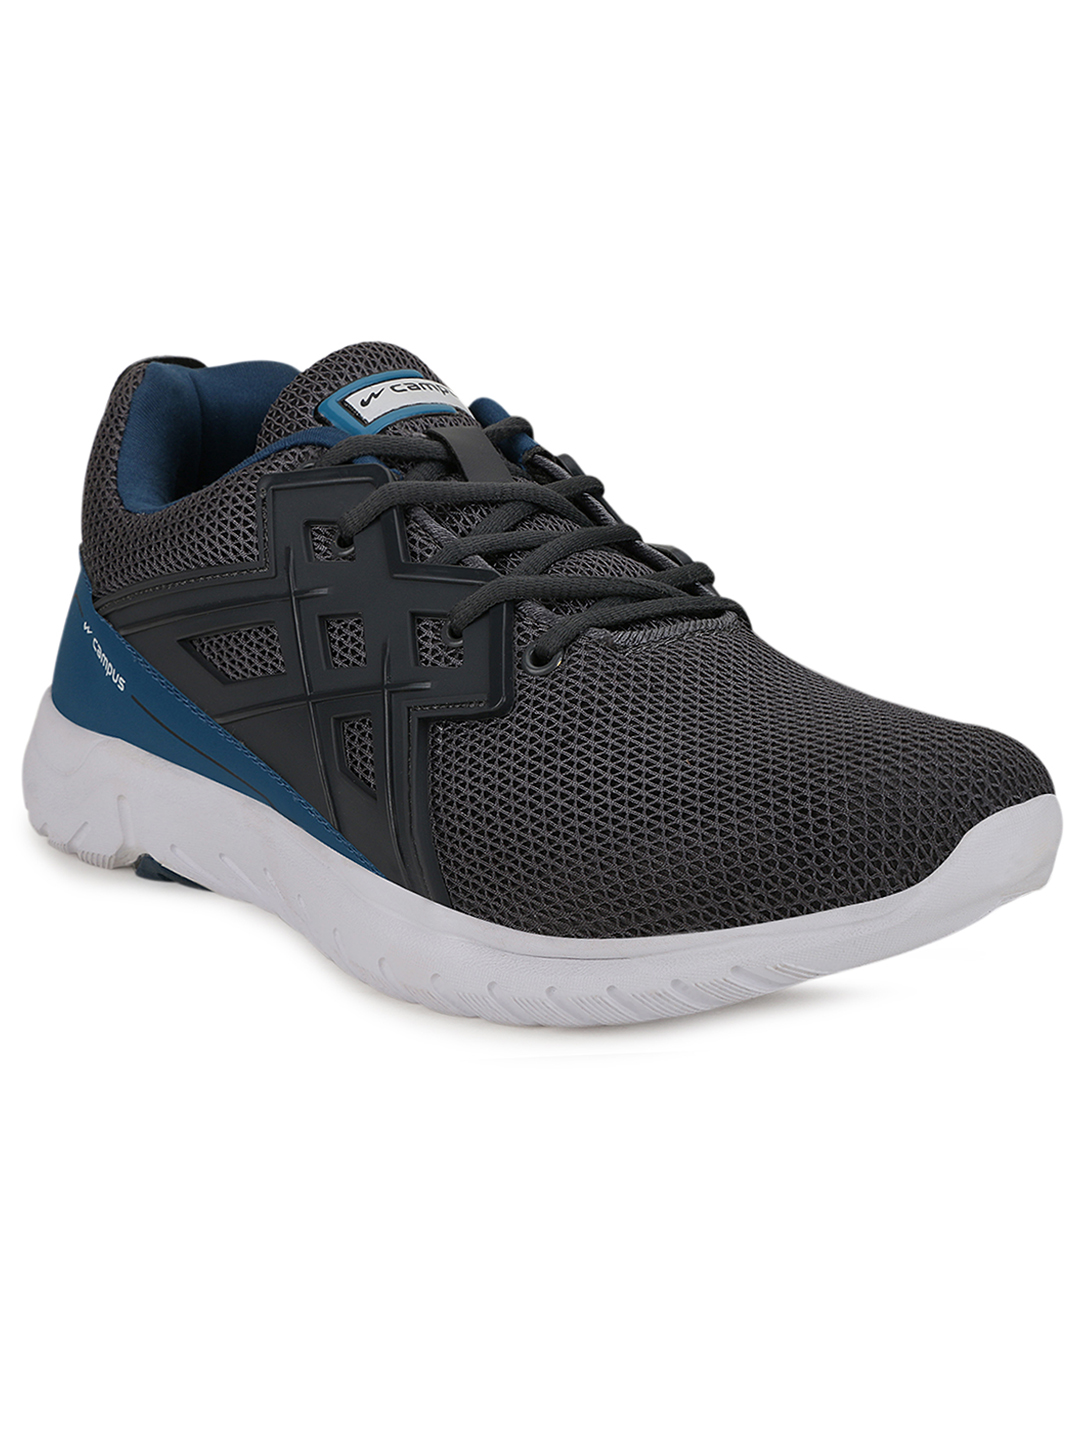 Campus Shoes   Grey Running Shoes